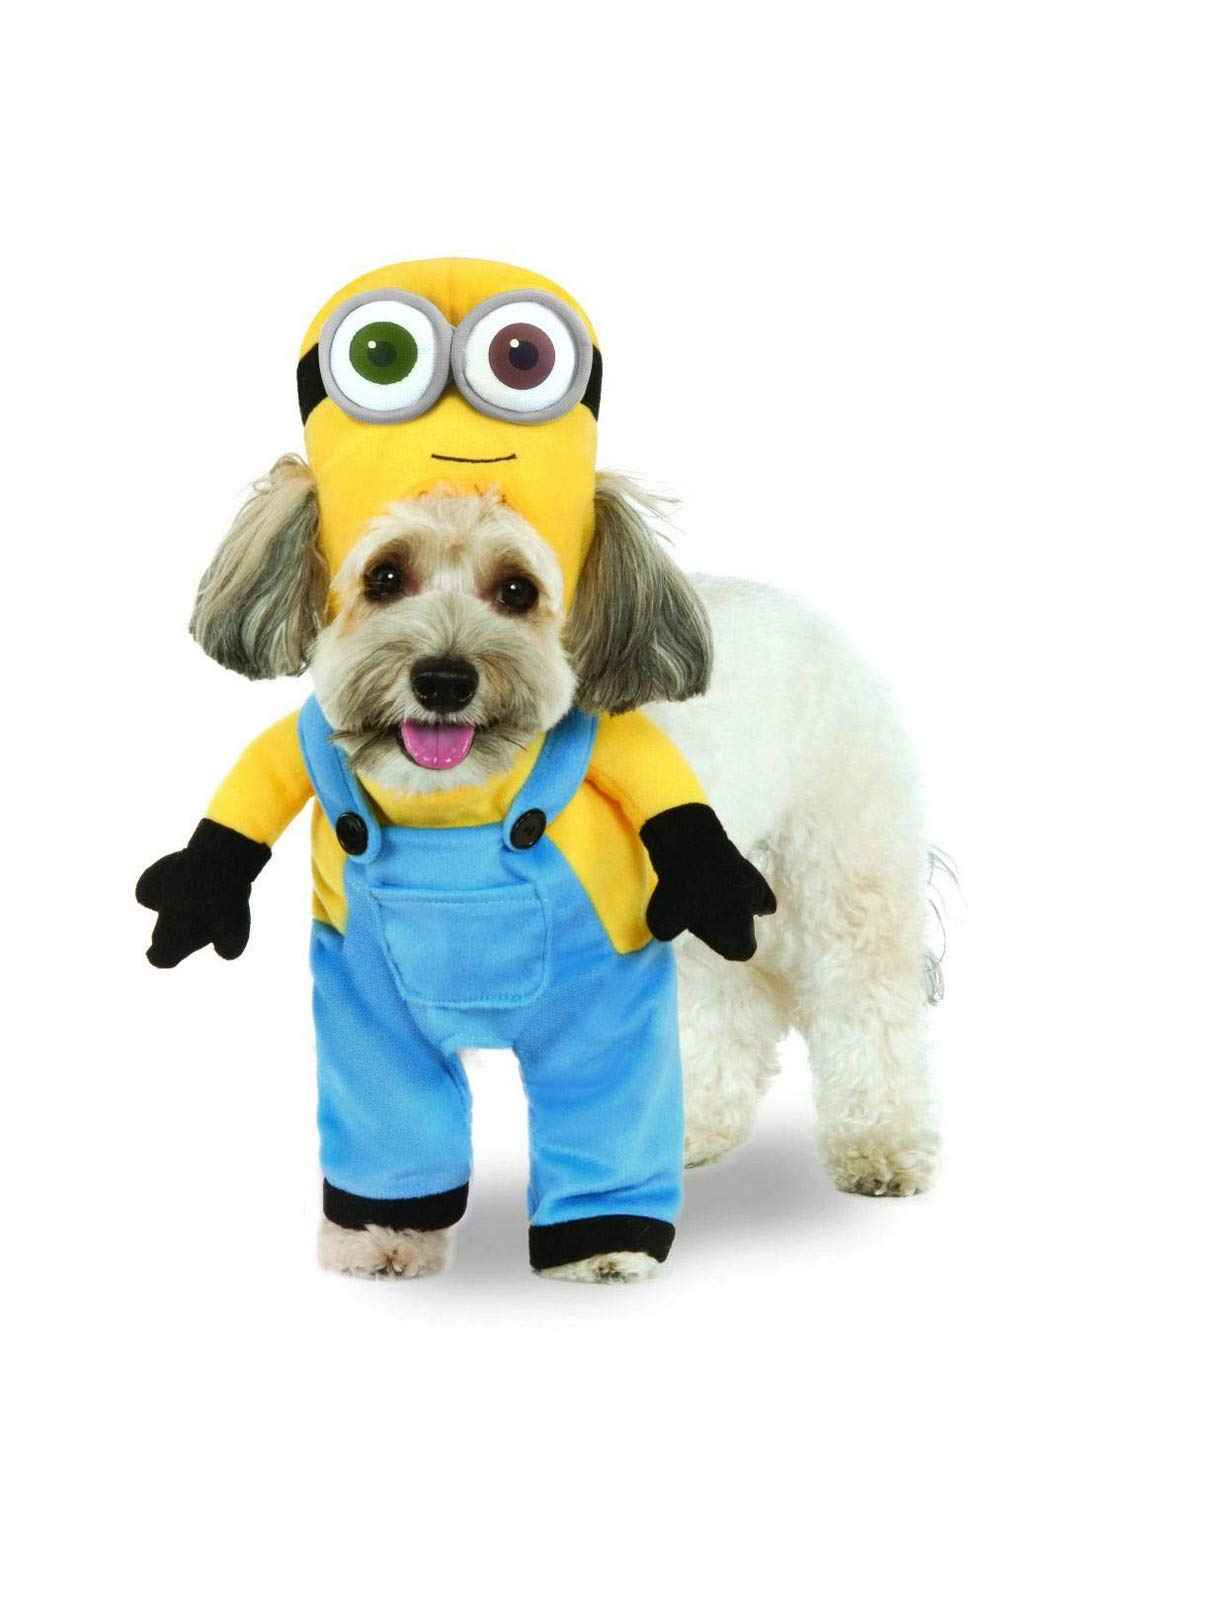 Minion Bob Arms Pet Suit, Small by Unknown (Image #1)